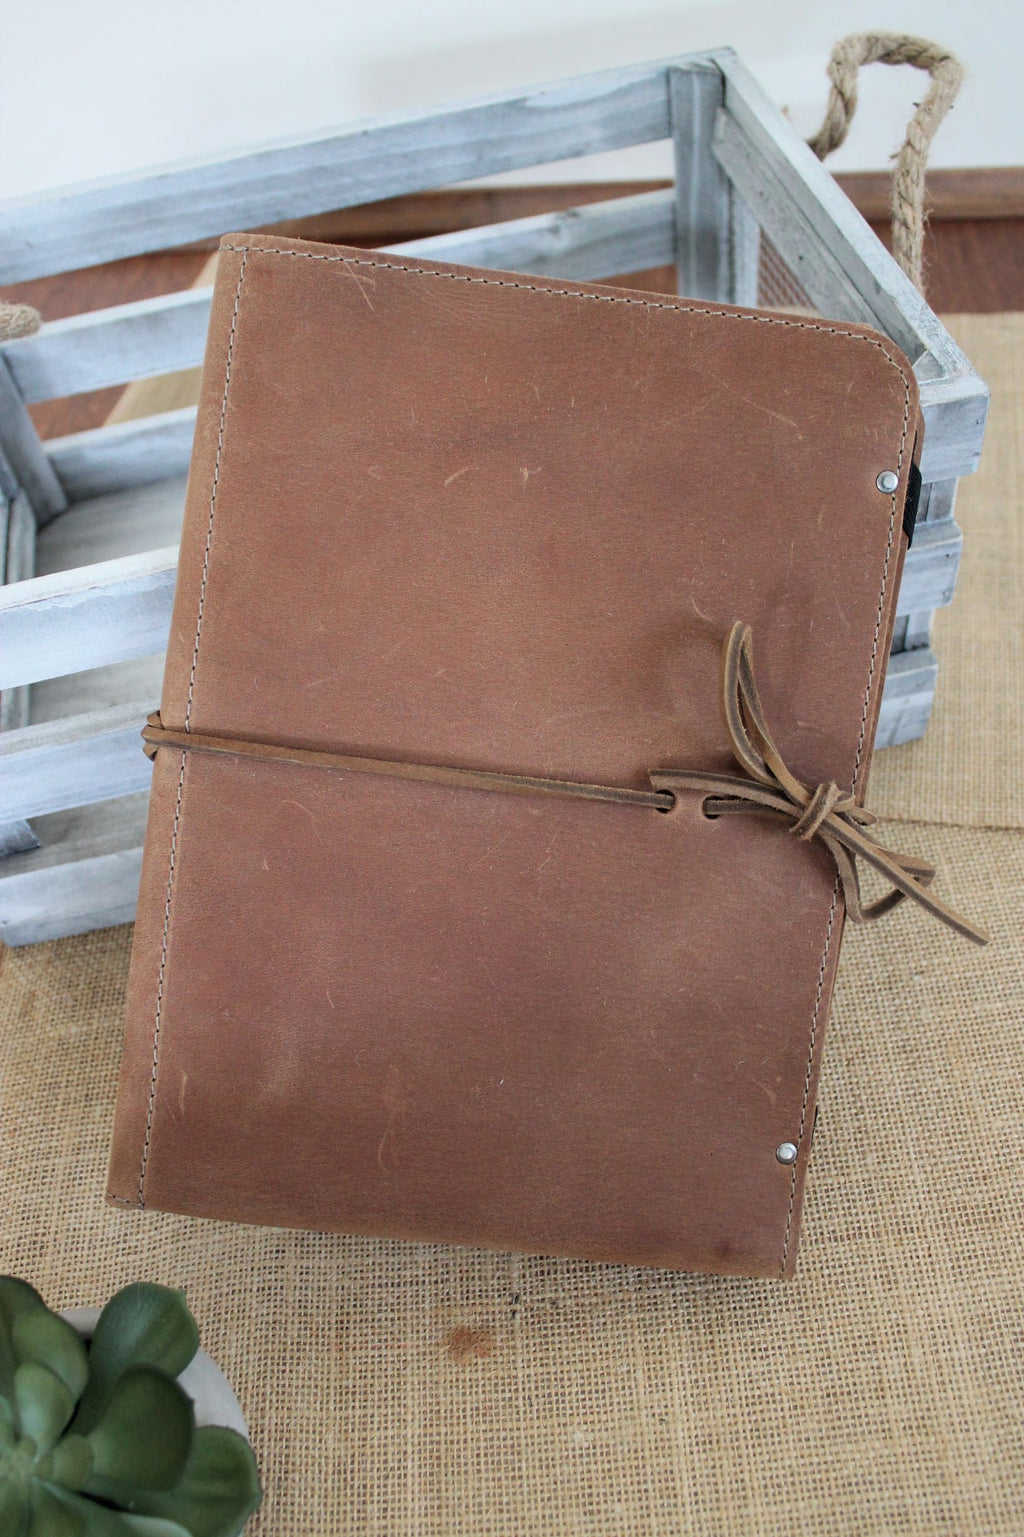 Monogram personalized leather iPad cases handmade in our leather store in Beaverton, Oregon